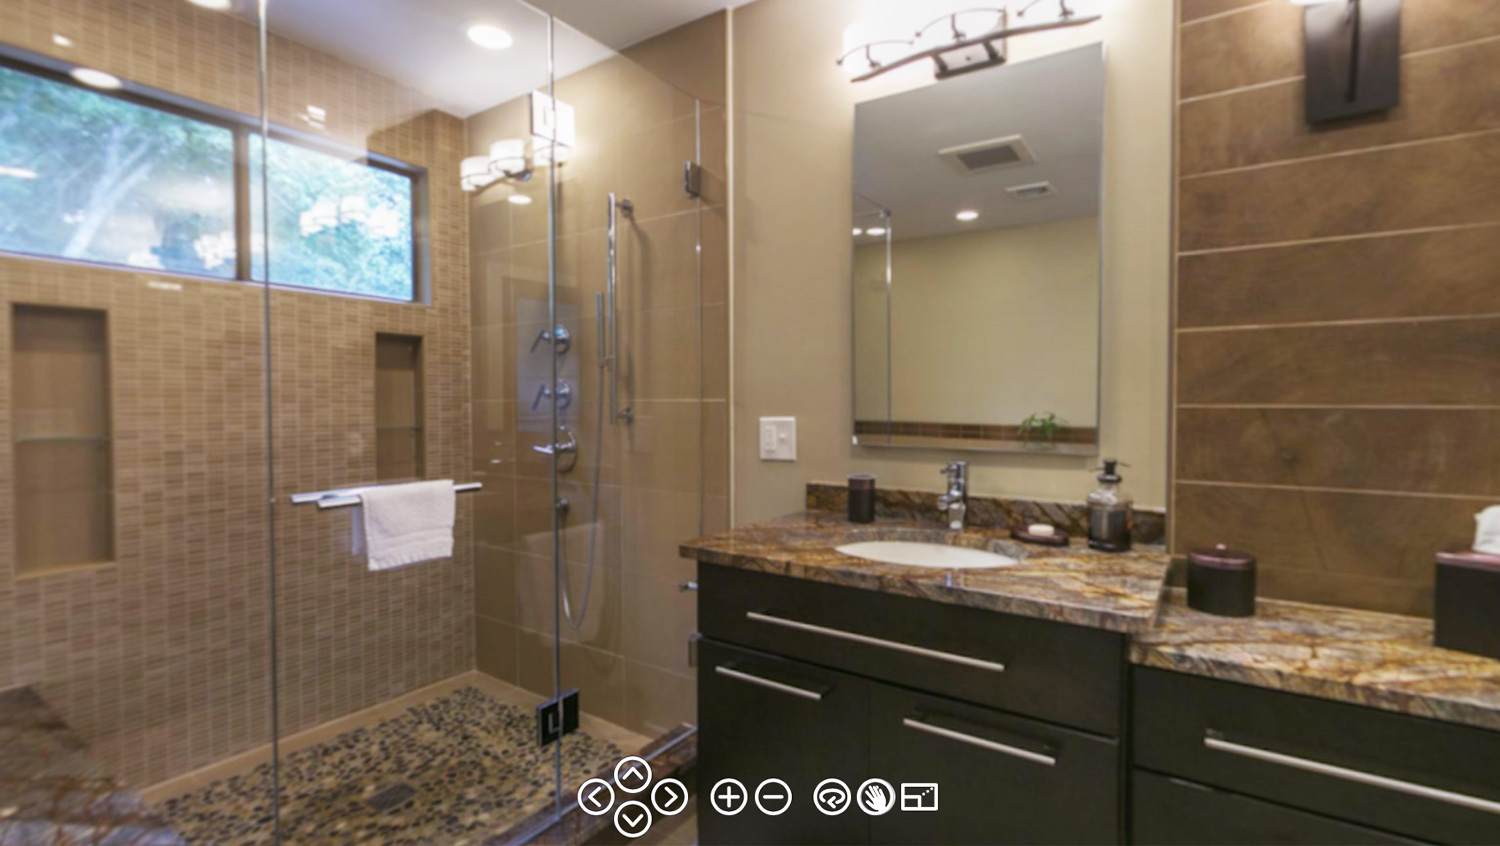 Ideas For Kitchen Remodel In Providence - Bathroom remodel rhode island